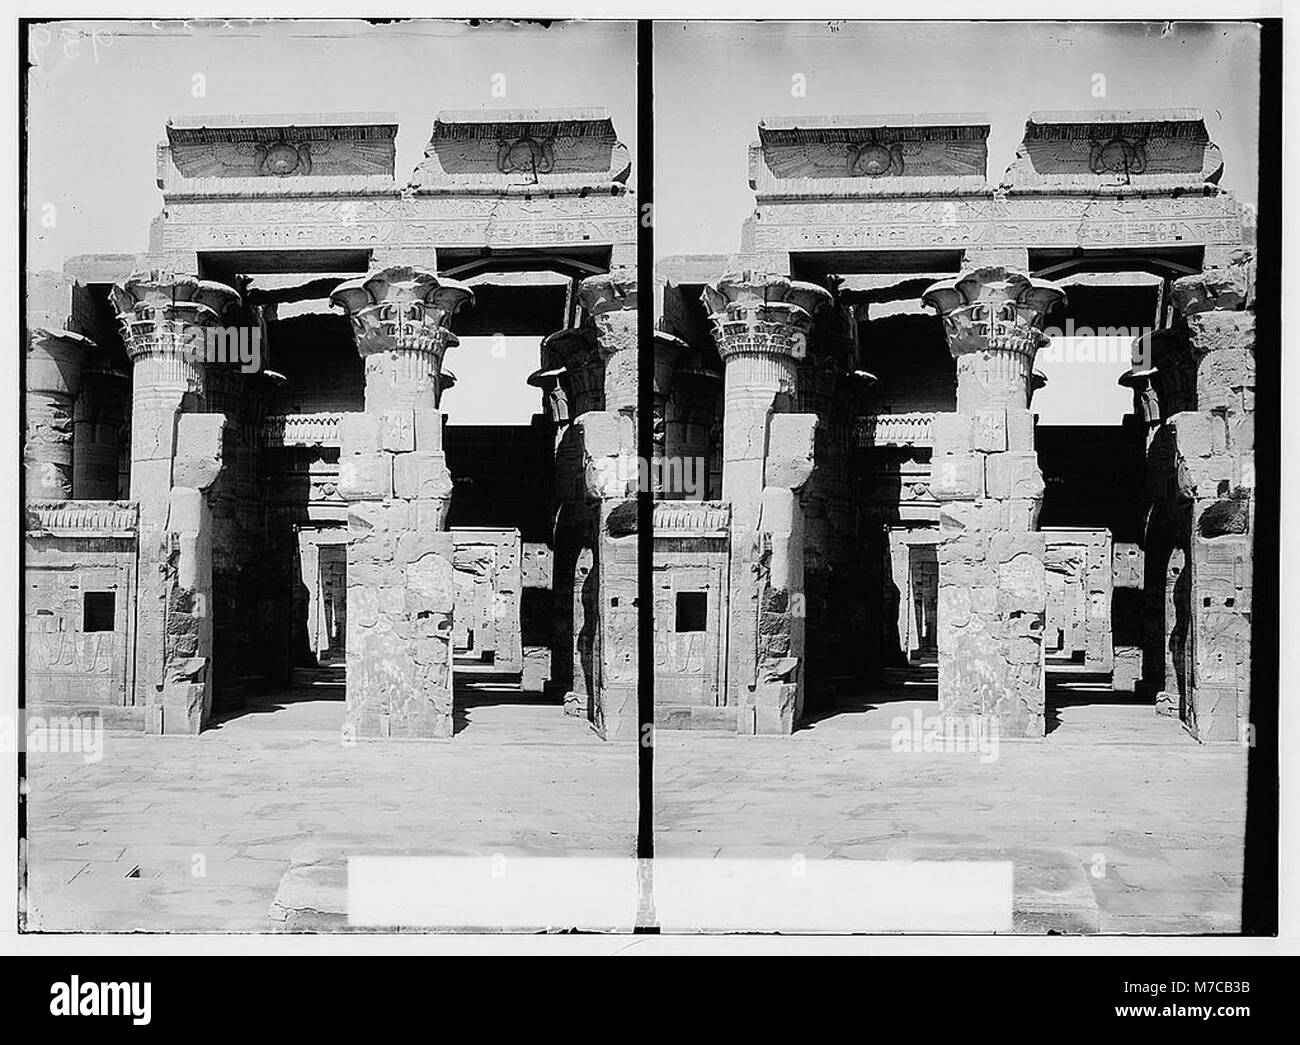 Egyptian views; Kom-Ombo. Great hypostyle hall of Temple of Sobk and Horoeris LOC matpc.01570 Stock Photo